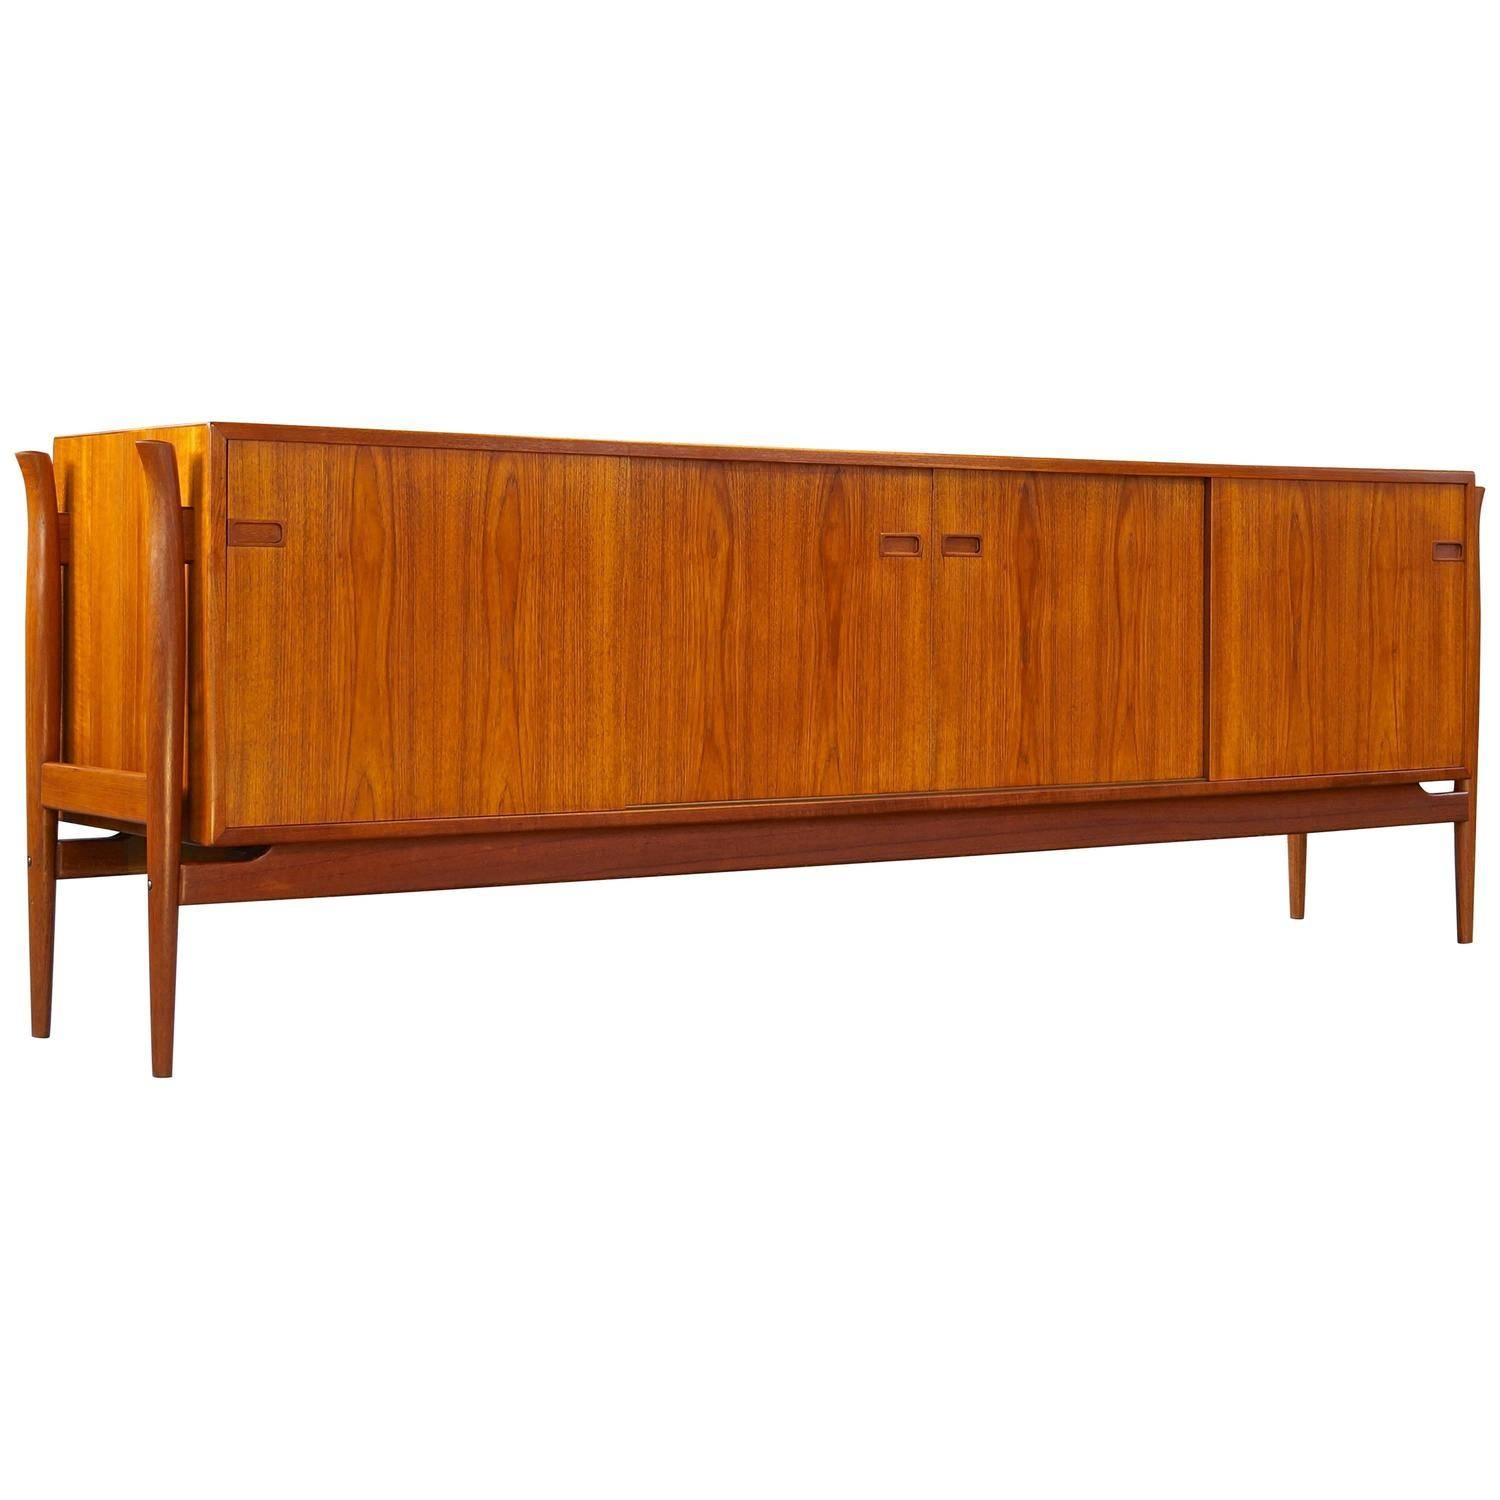 Inspiration about Vintage Danish Teak Sideboard Or Credenza, Extra Long And Low Regarding Long Low Sideboards (#14 of 15)